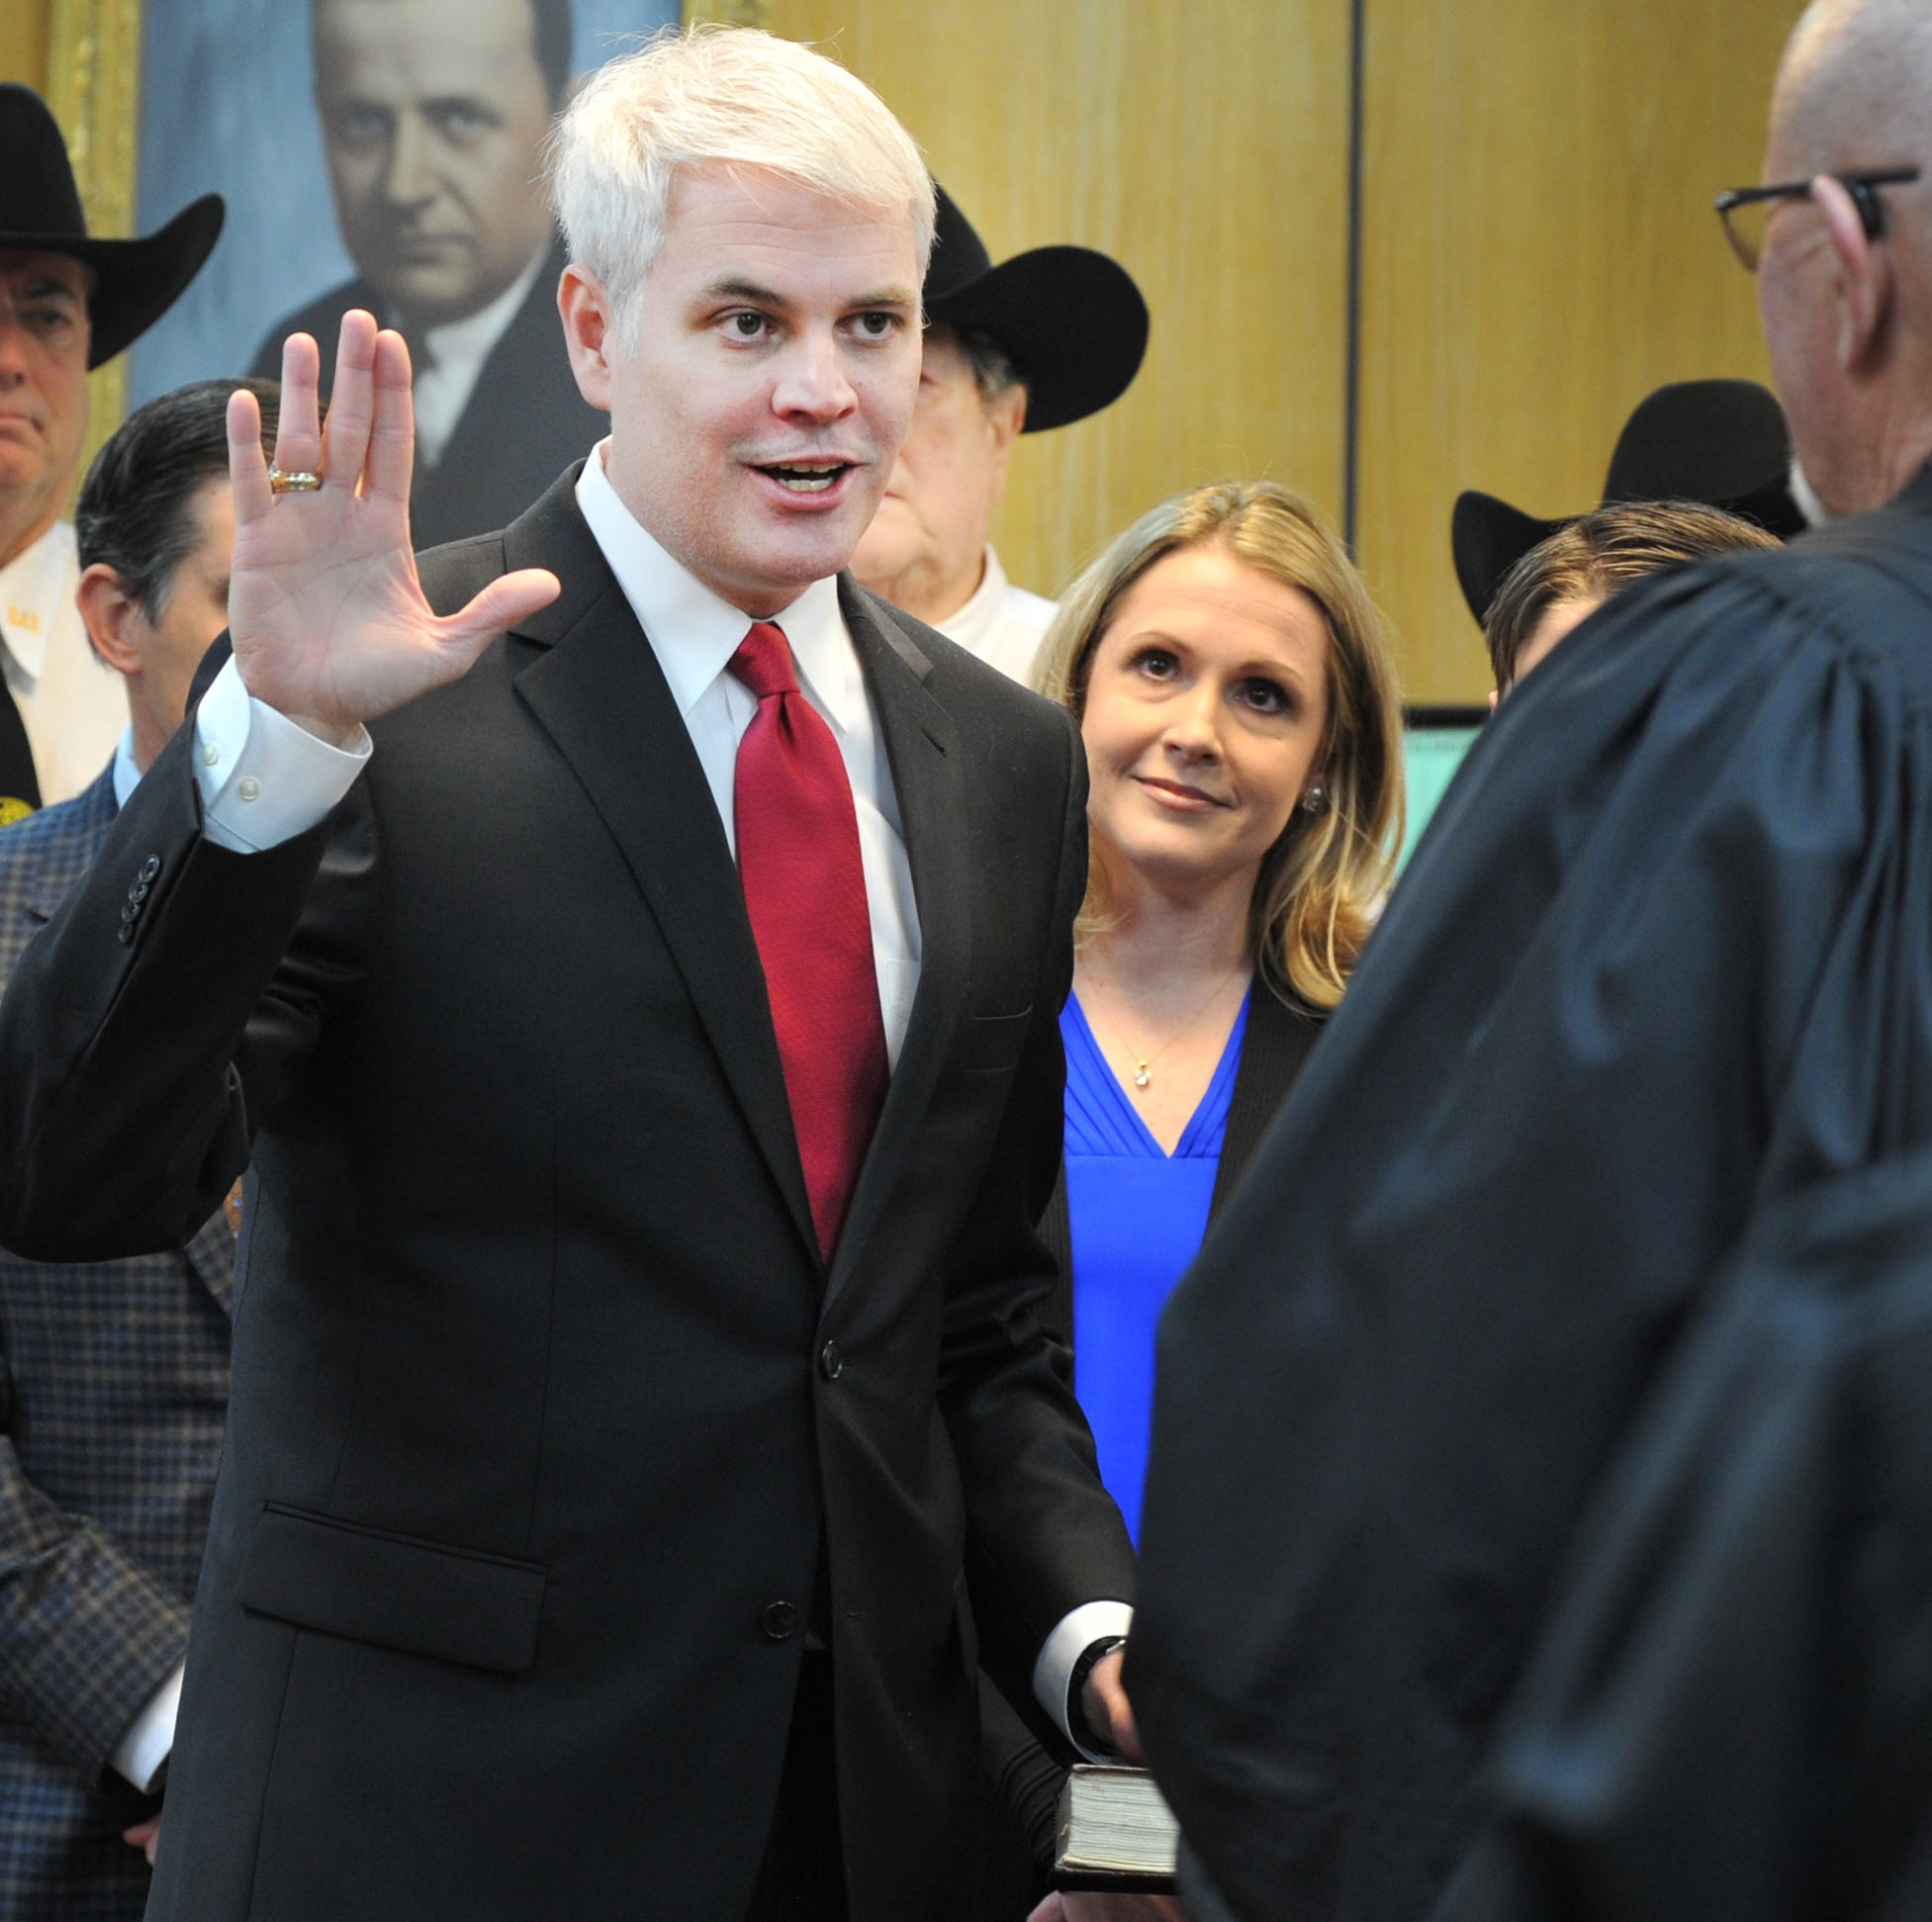 Progress: John Gillespie ends eventful year as new District Attorney